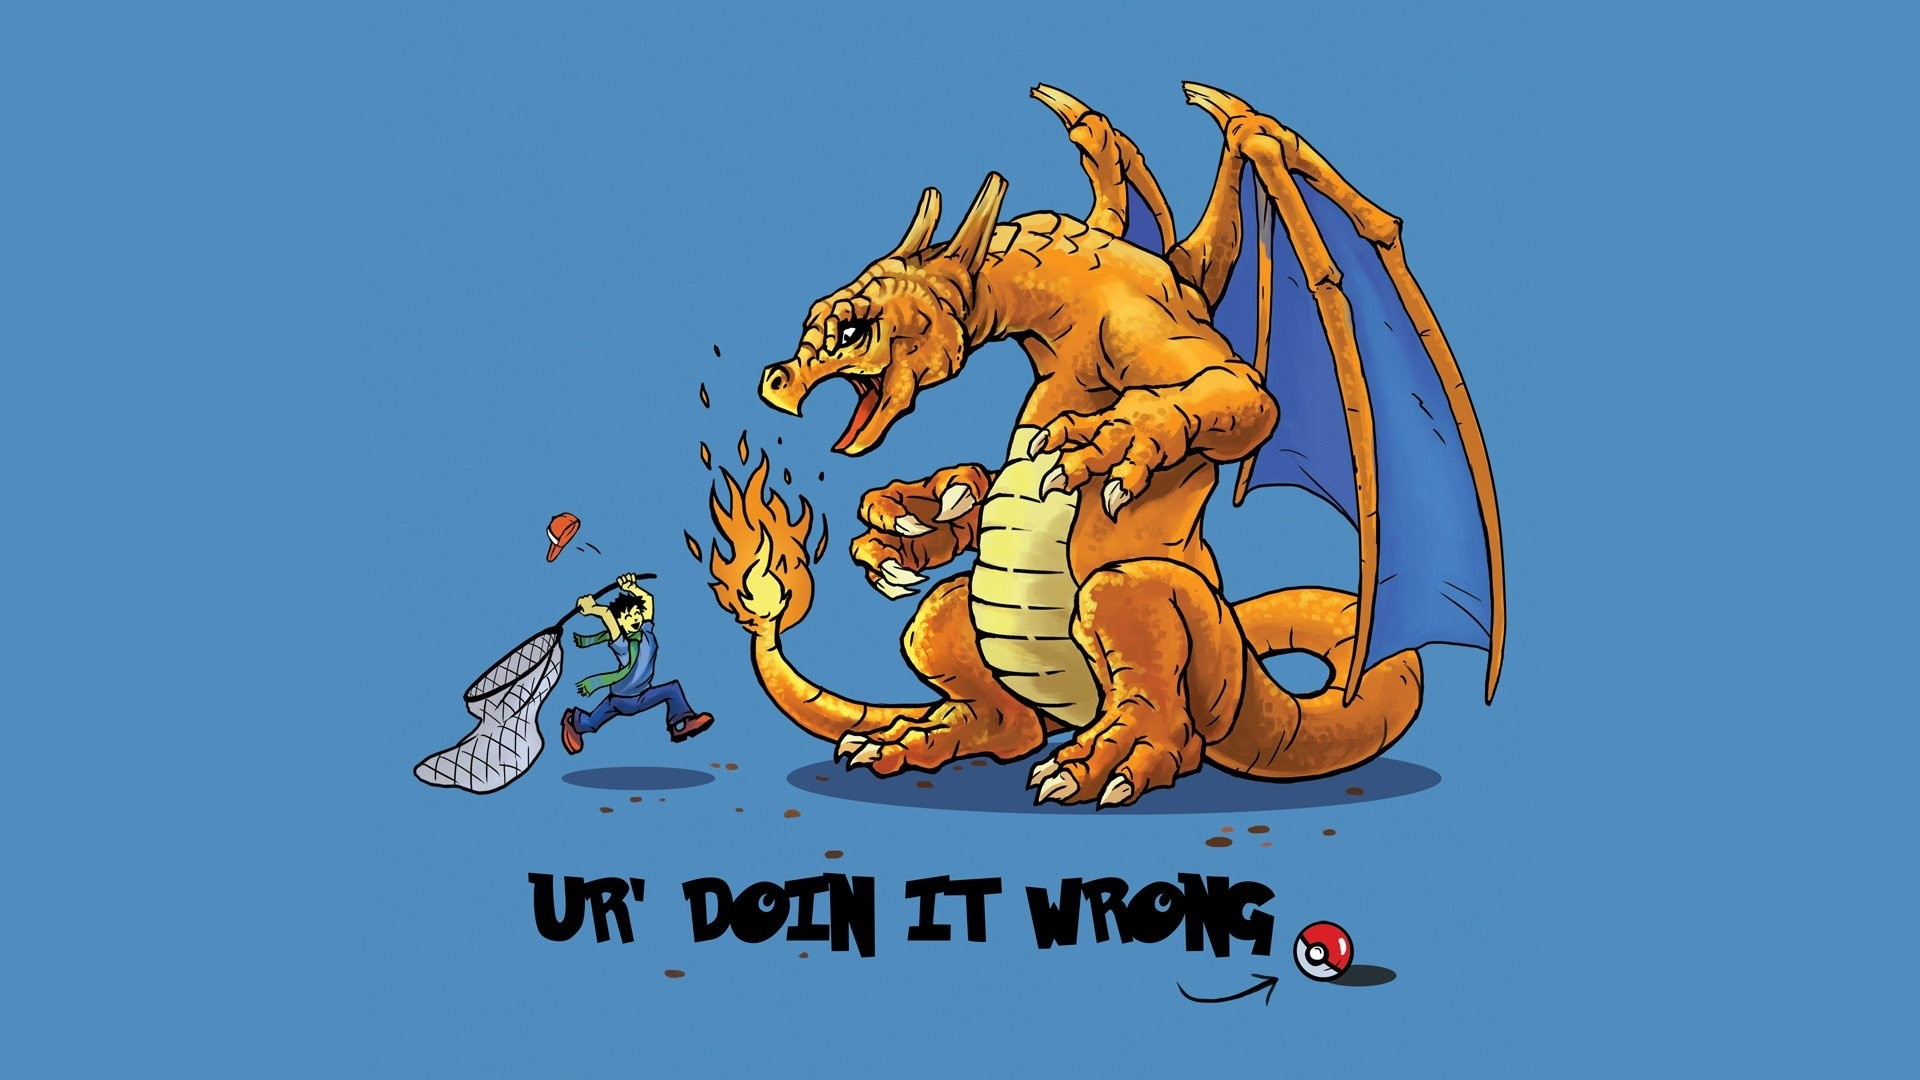 1920x1080 Funny Catching Pokemon New Wallpaper Wallpaper